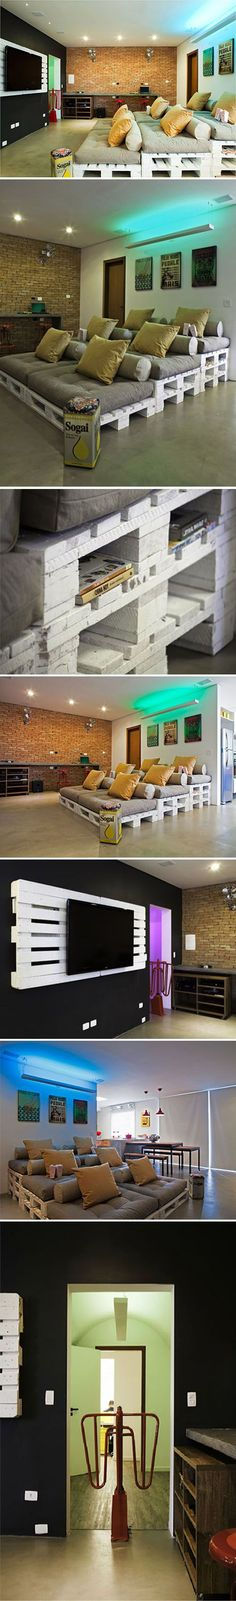 More ideas below: DIY Home theater Decorations Ideas Basement Home theater Rooms Red Home theater Seating Small Home theater Speakers Luxury Home theater Couch Design Cozy Home theater Projector Setup Modern Home theater Lighting System Home Theater Lighting, Home Theater Rooms, Home Theater Seating, Home Theater Design, Cinema Room, Cinema Cinema, Furniture Layout, Pallet Furniture, Pallet Sofa